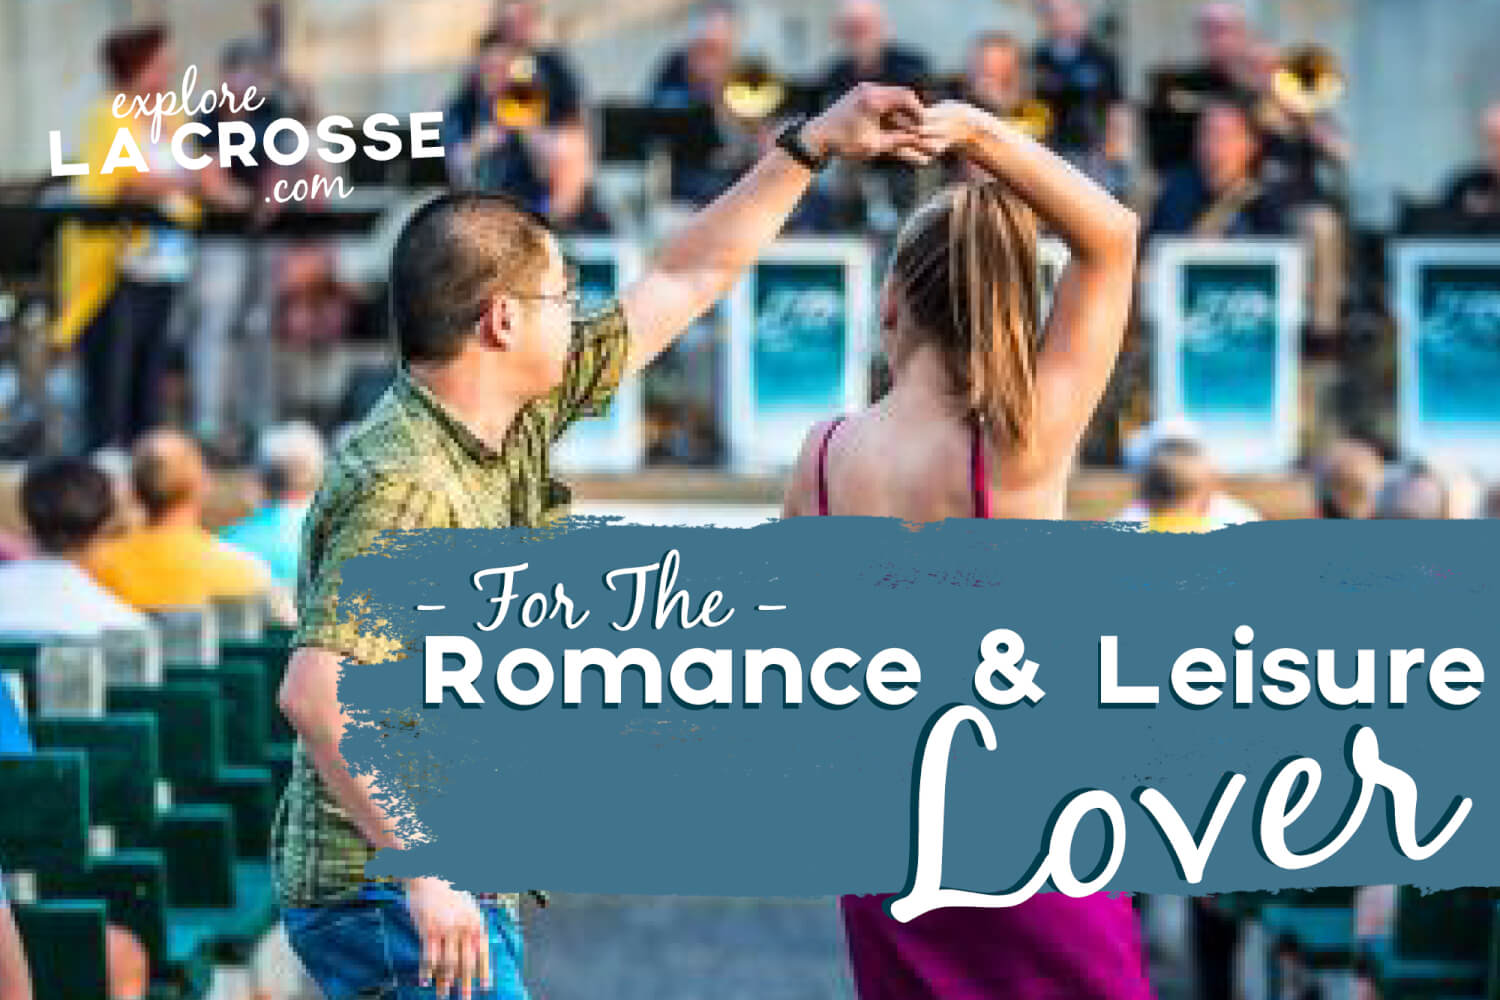 FOR THE ROMANCE AND LEISURE LOVER